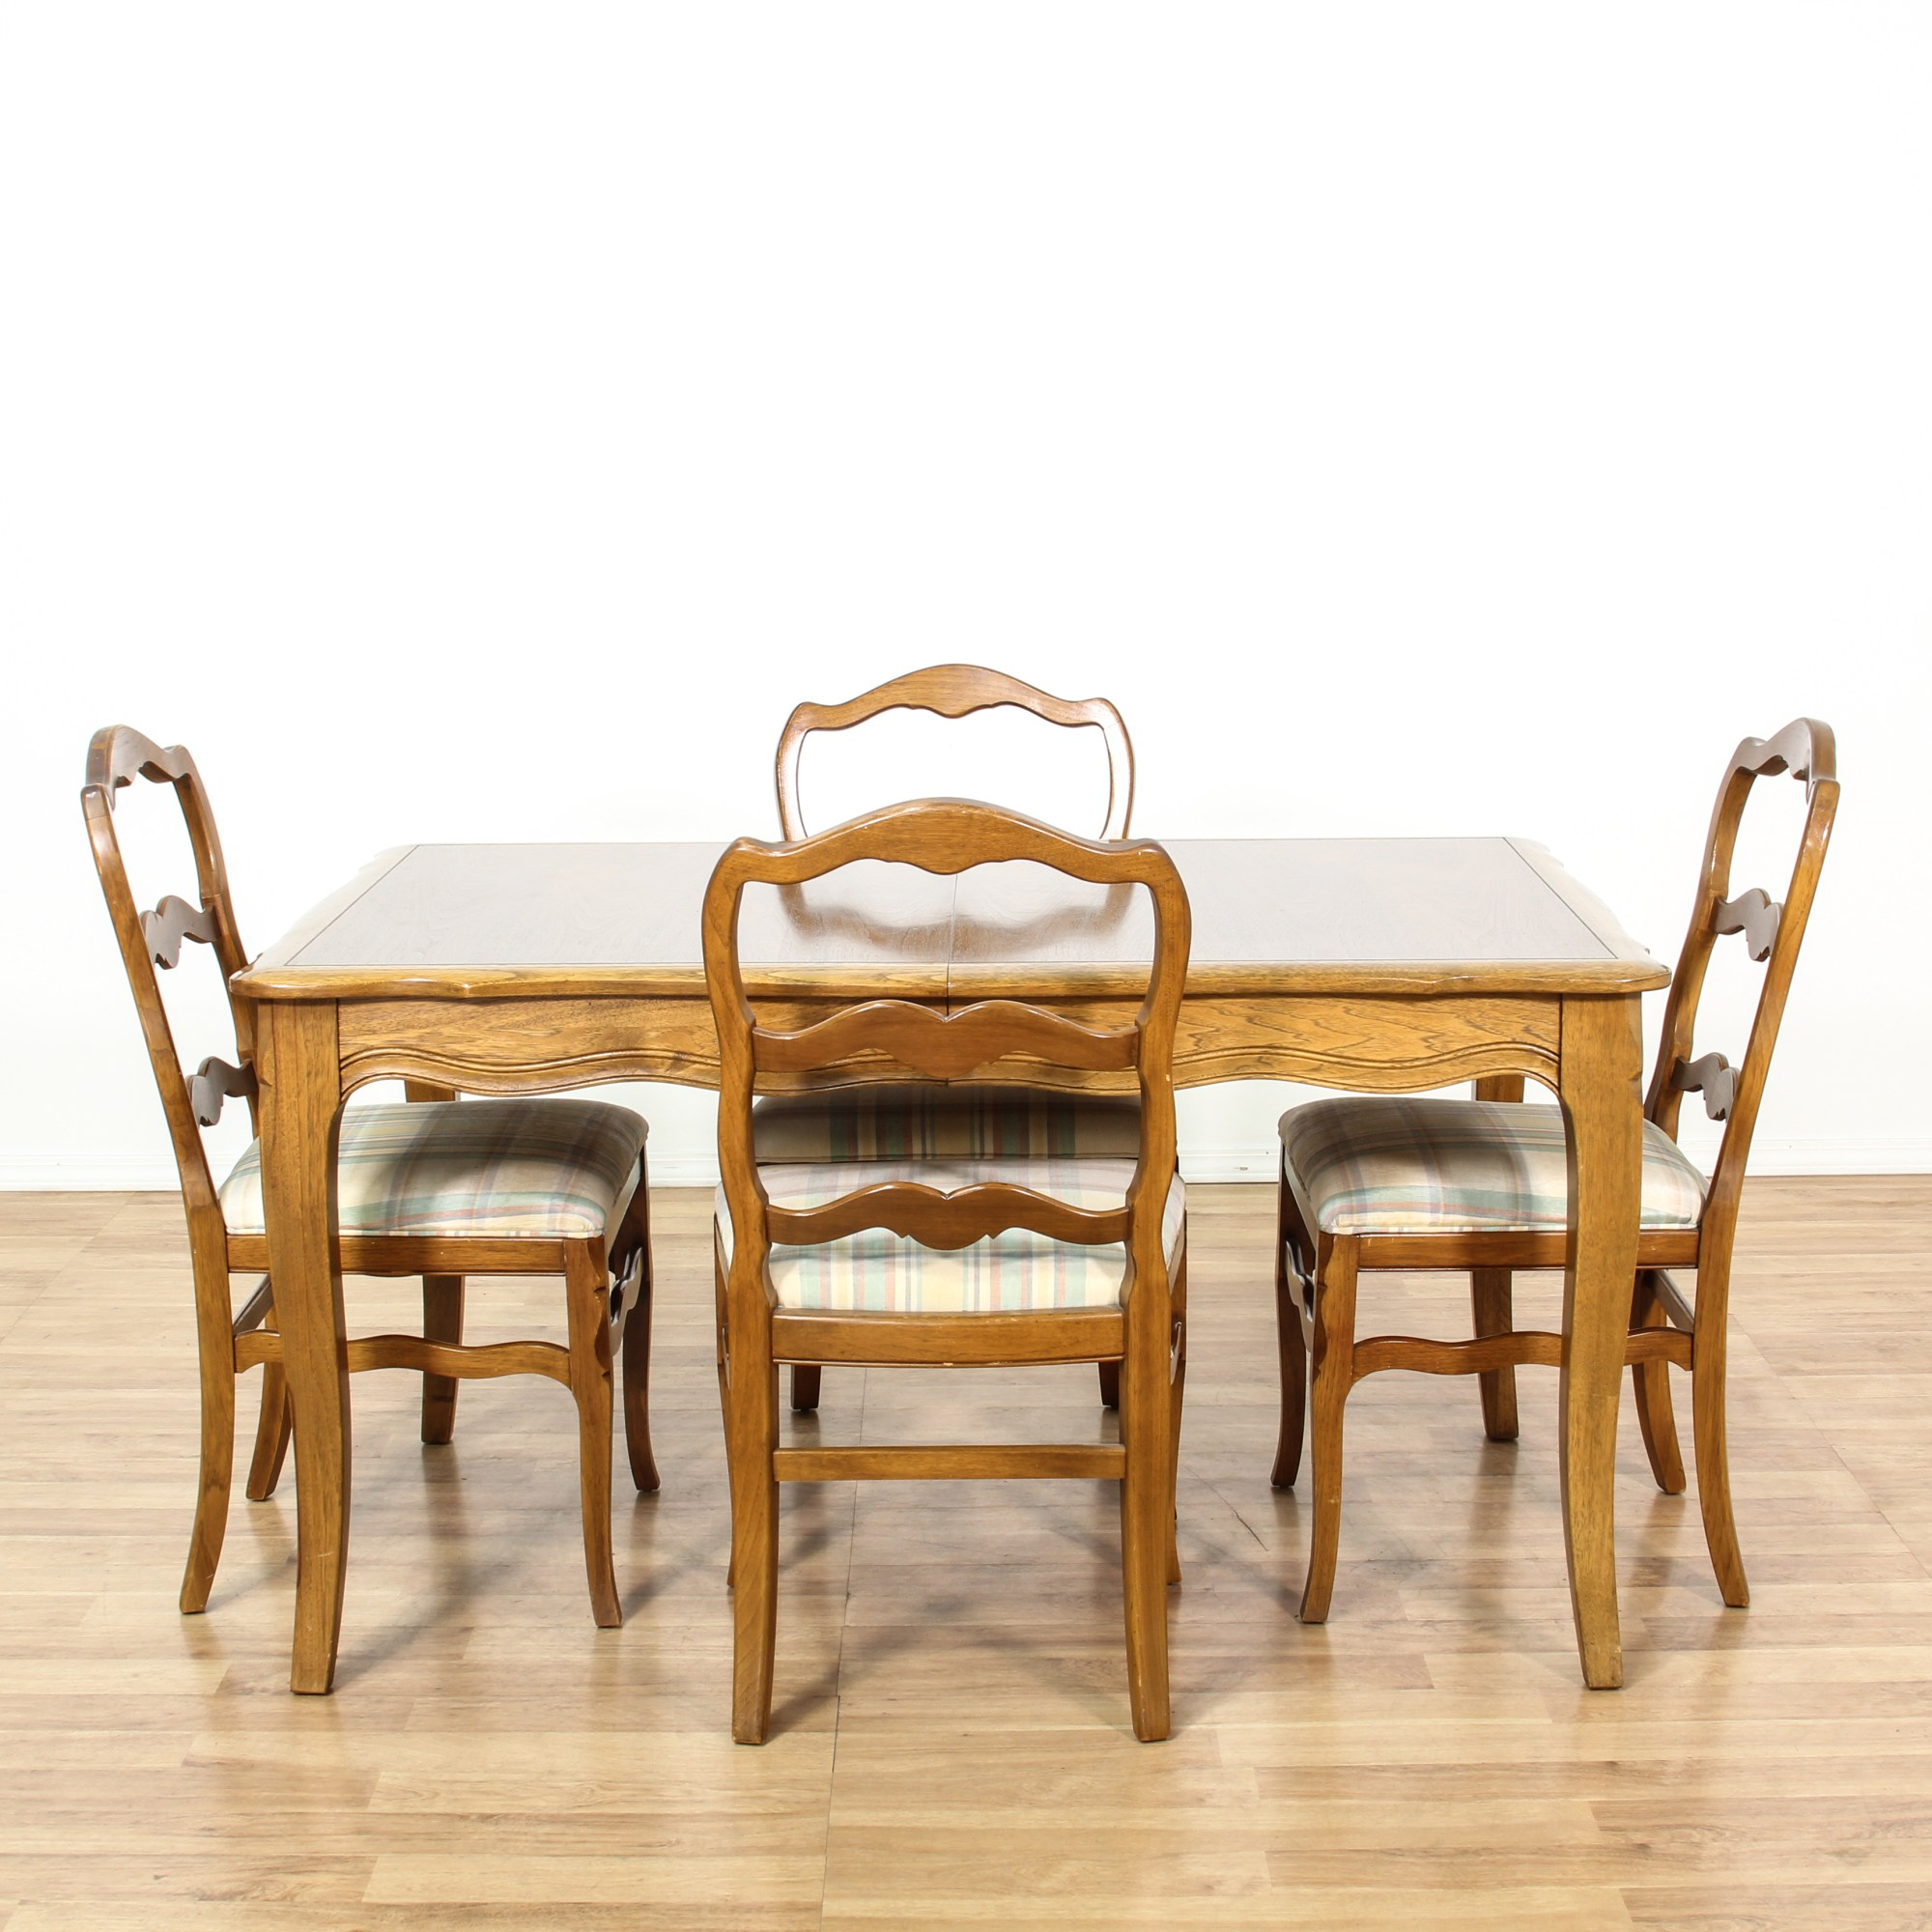 Drexel French Provincial Dining Set w 4 Chairs